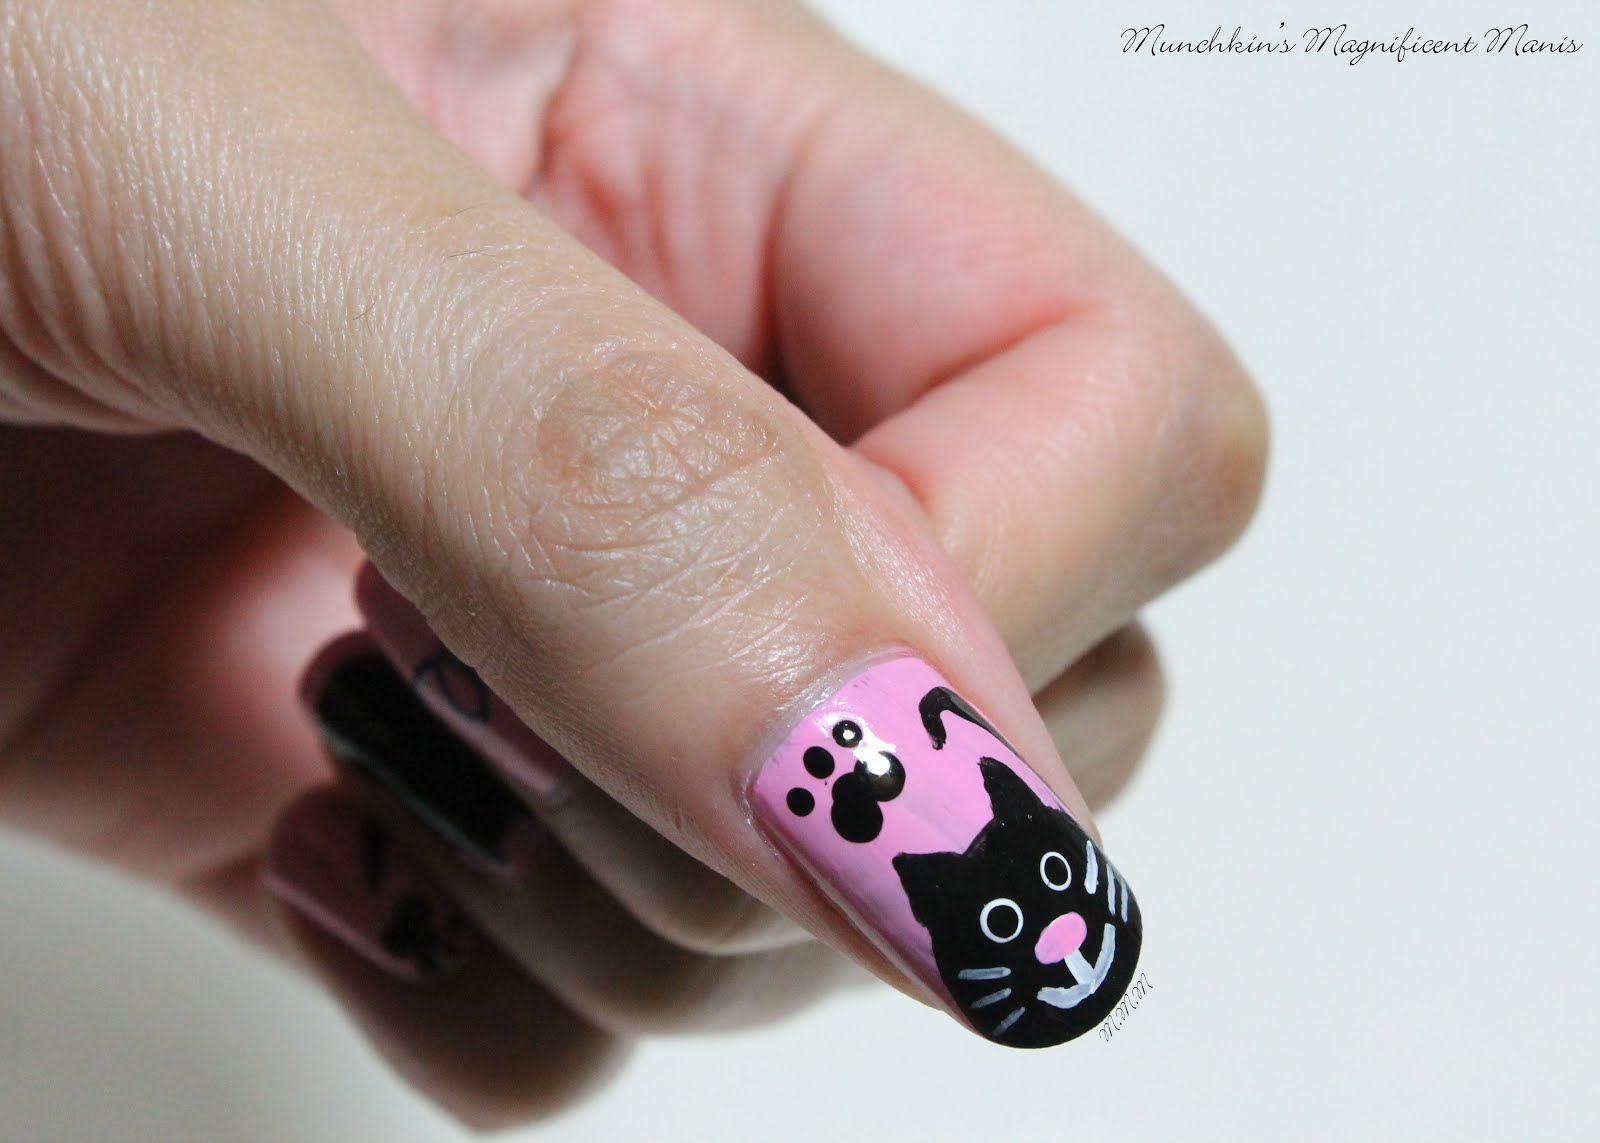 Munchkin\'s Magnificent Manis: Meow! Kitty Nail Design